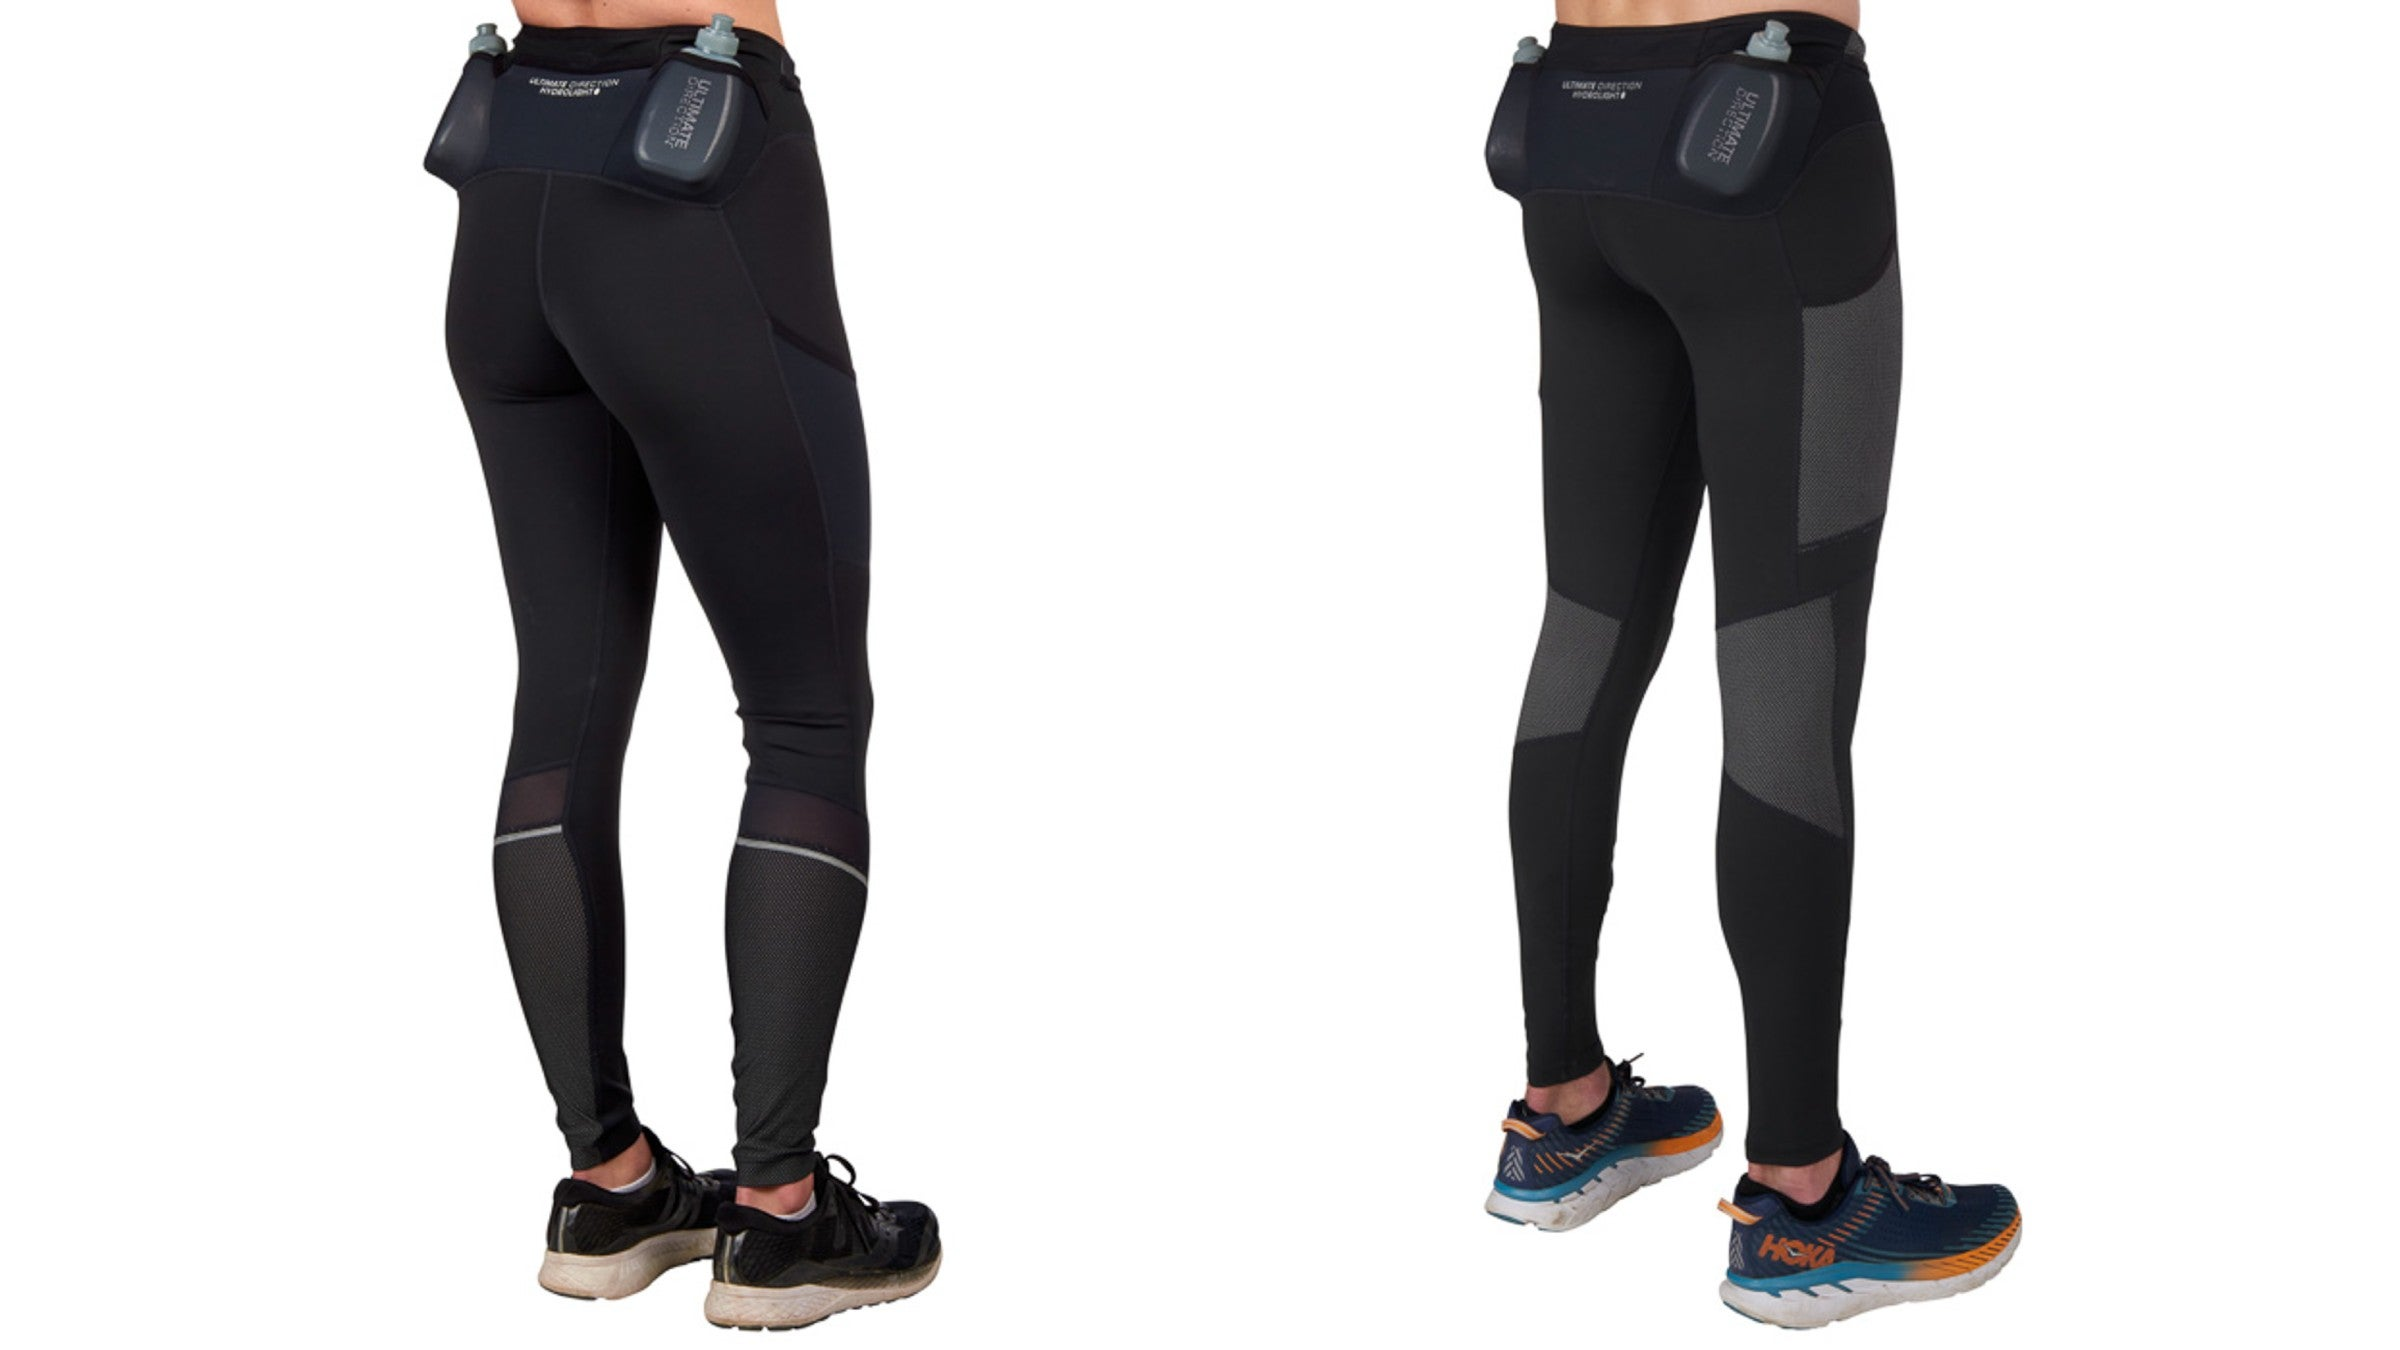 Women's and Men's Ultimate Direction Hydro Tights